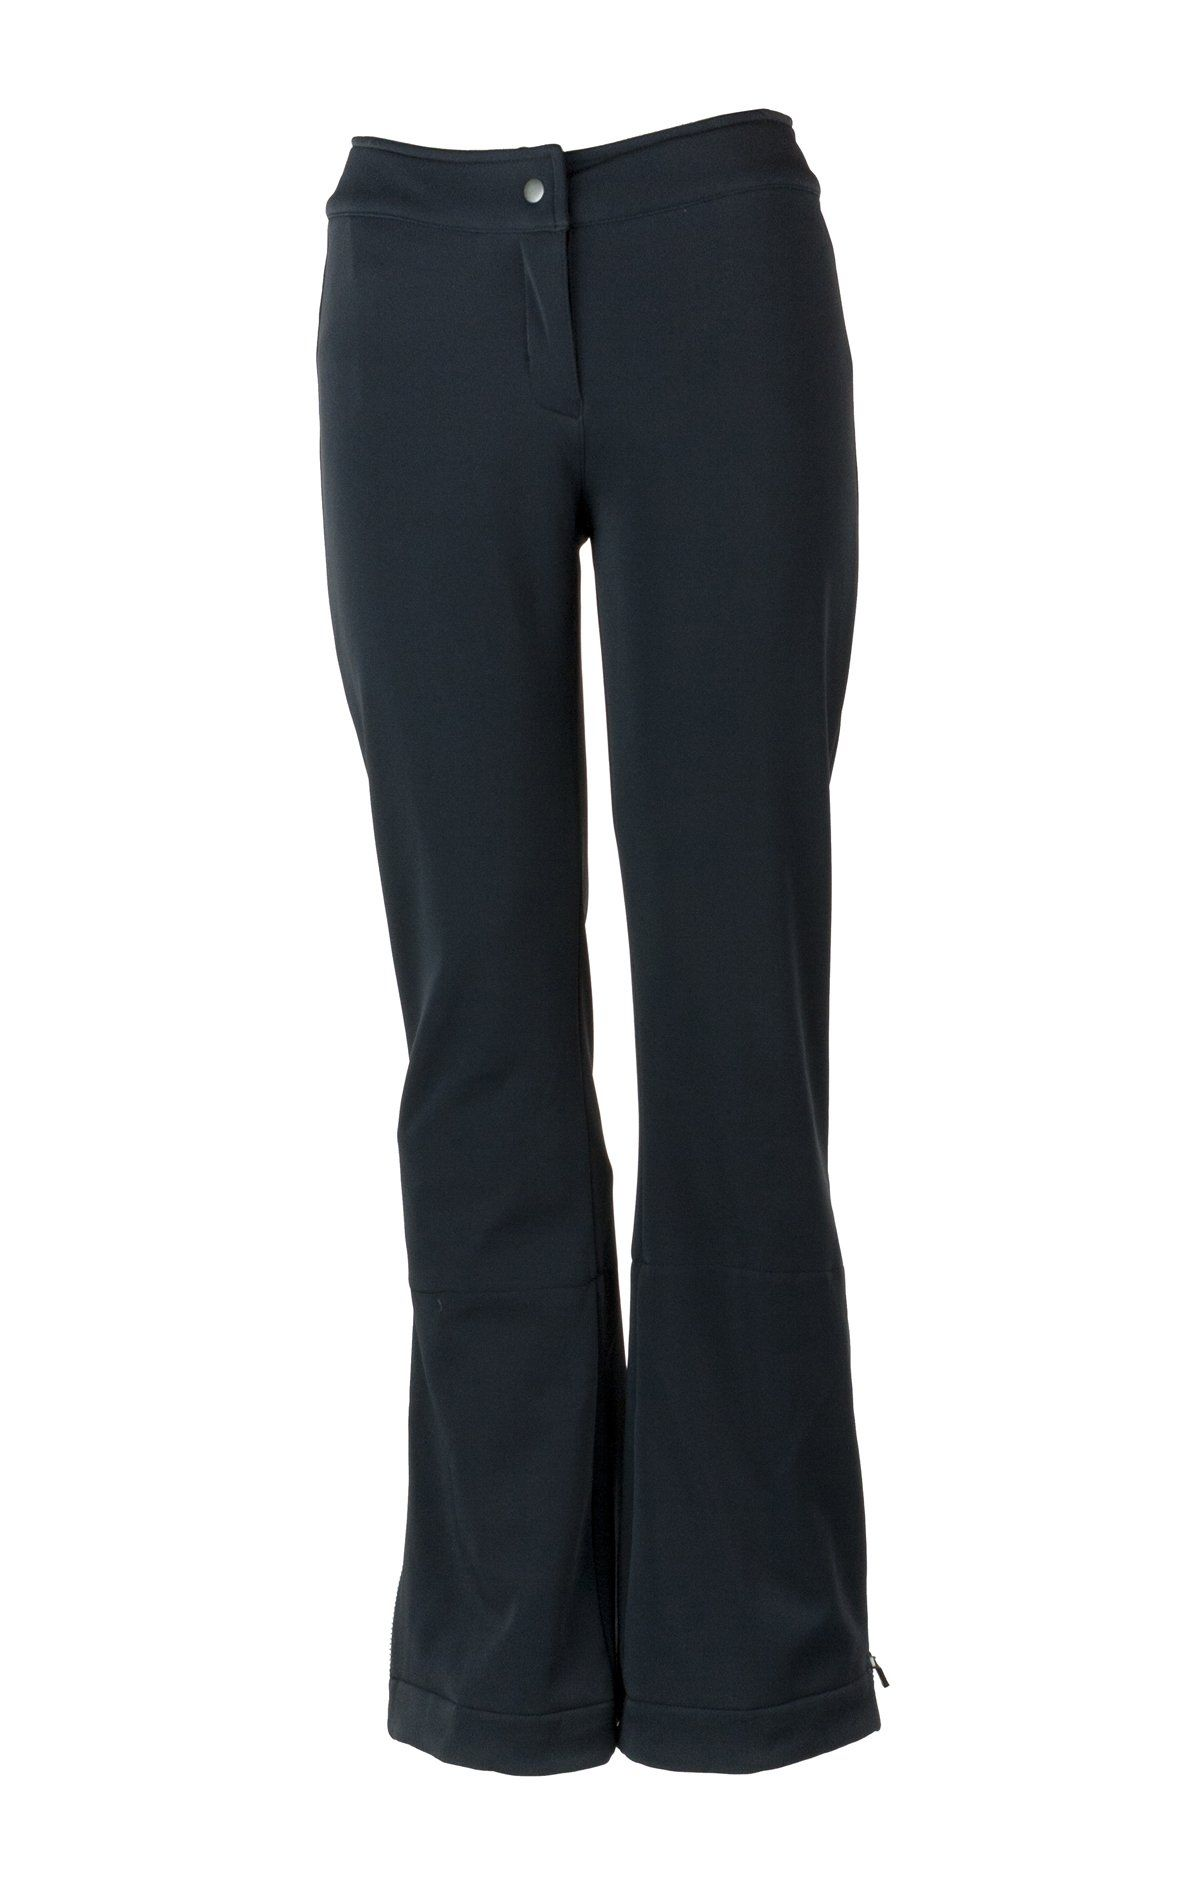 7bb1cee3a3e2f Bond Pant - Women - Obermeyer Ski Clothing, comes in petite, black and white